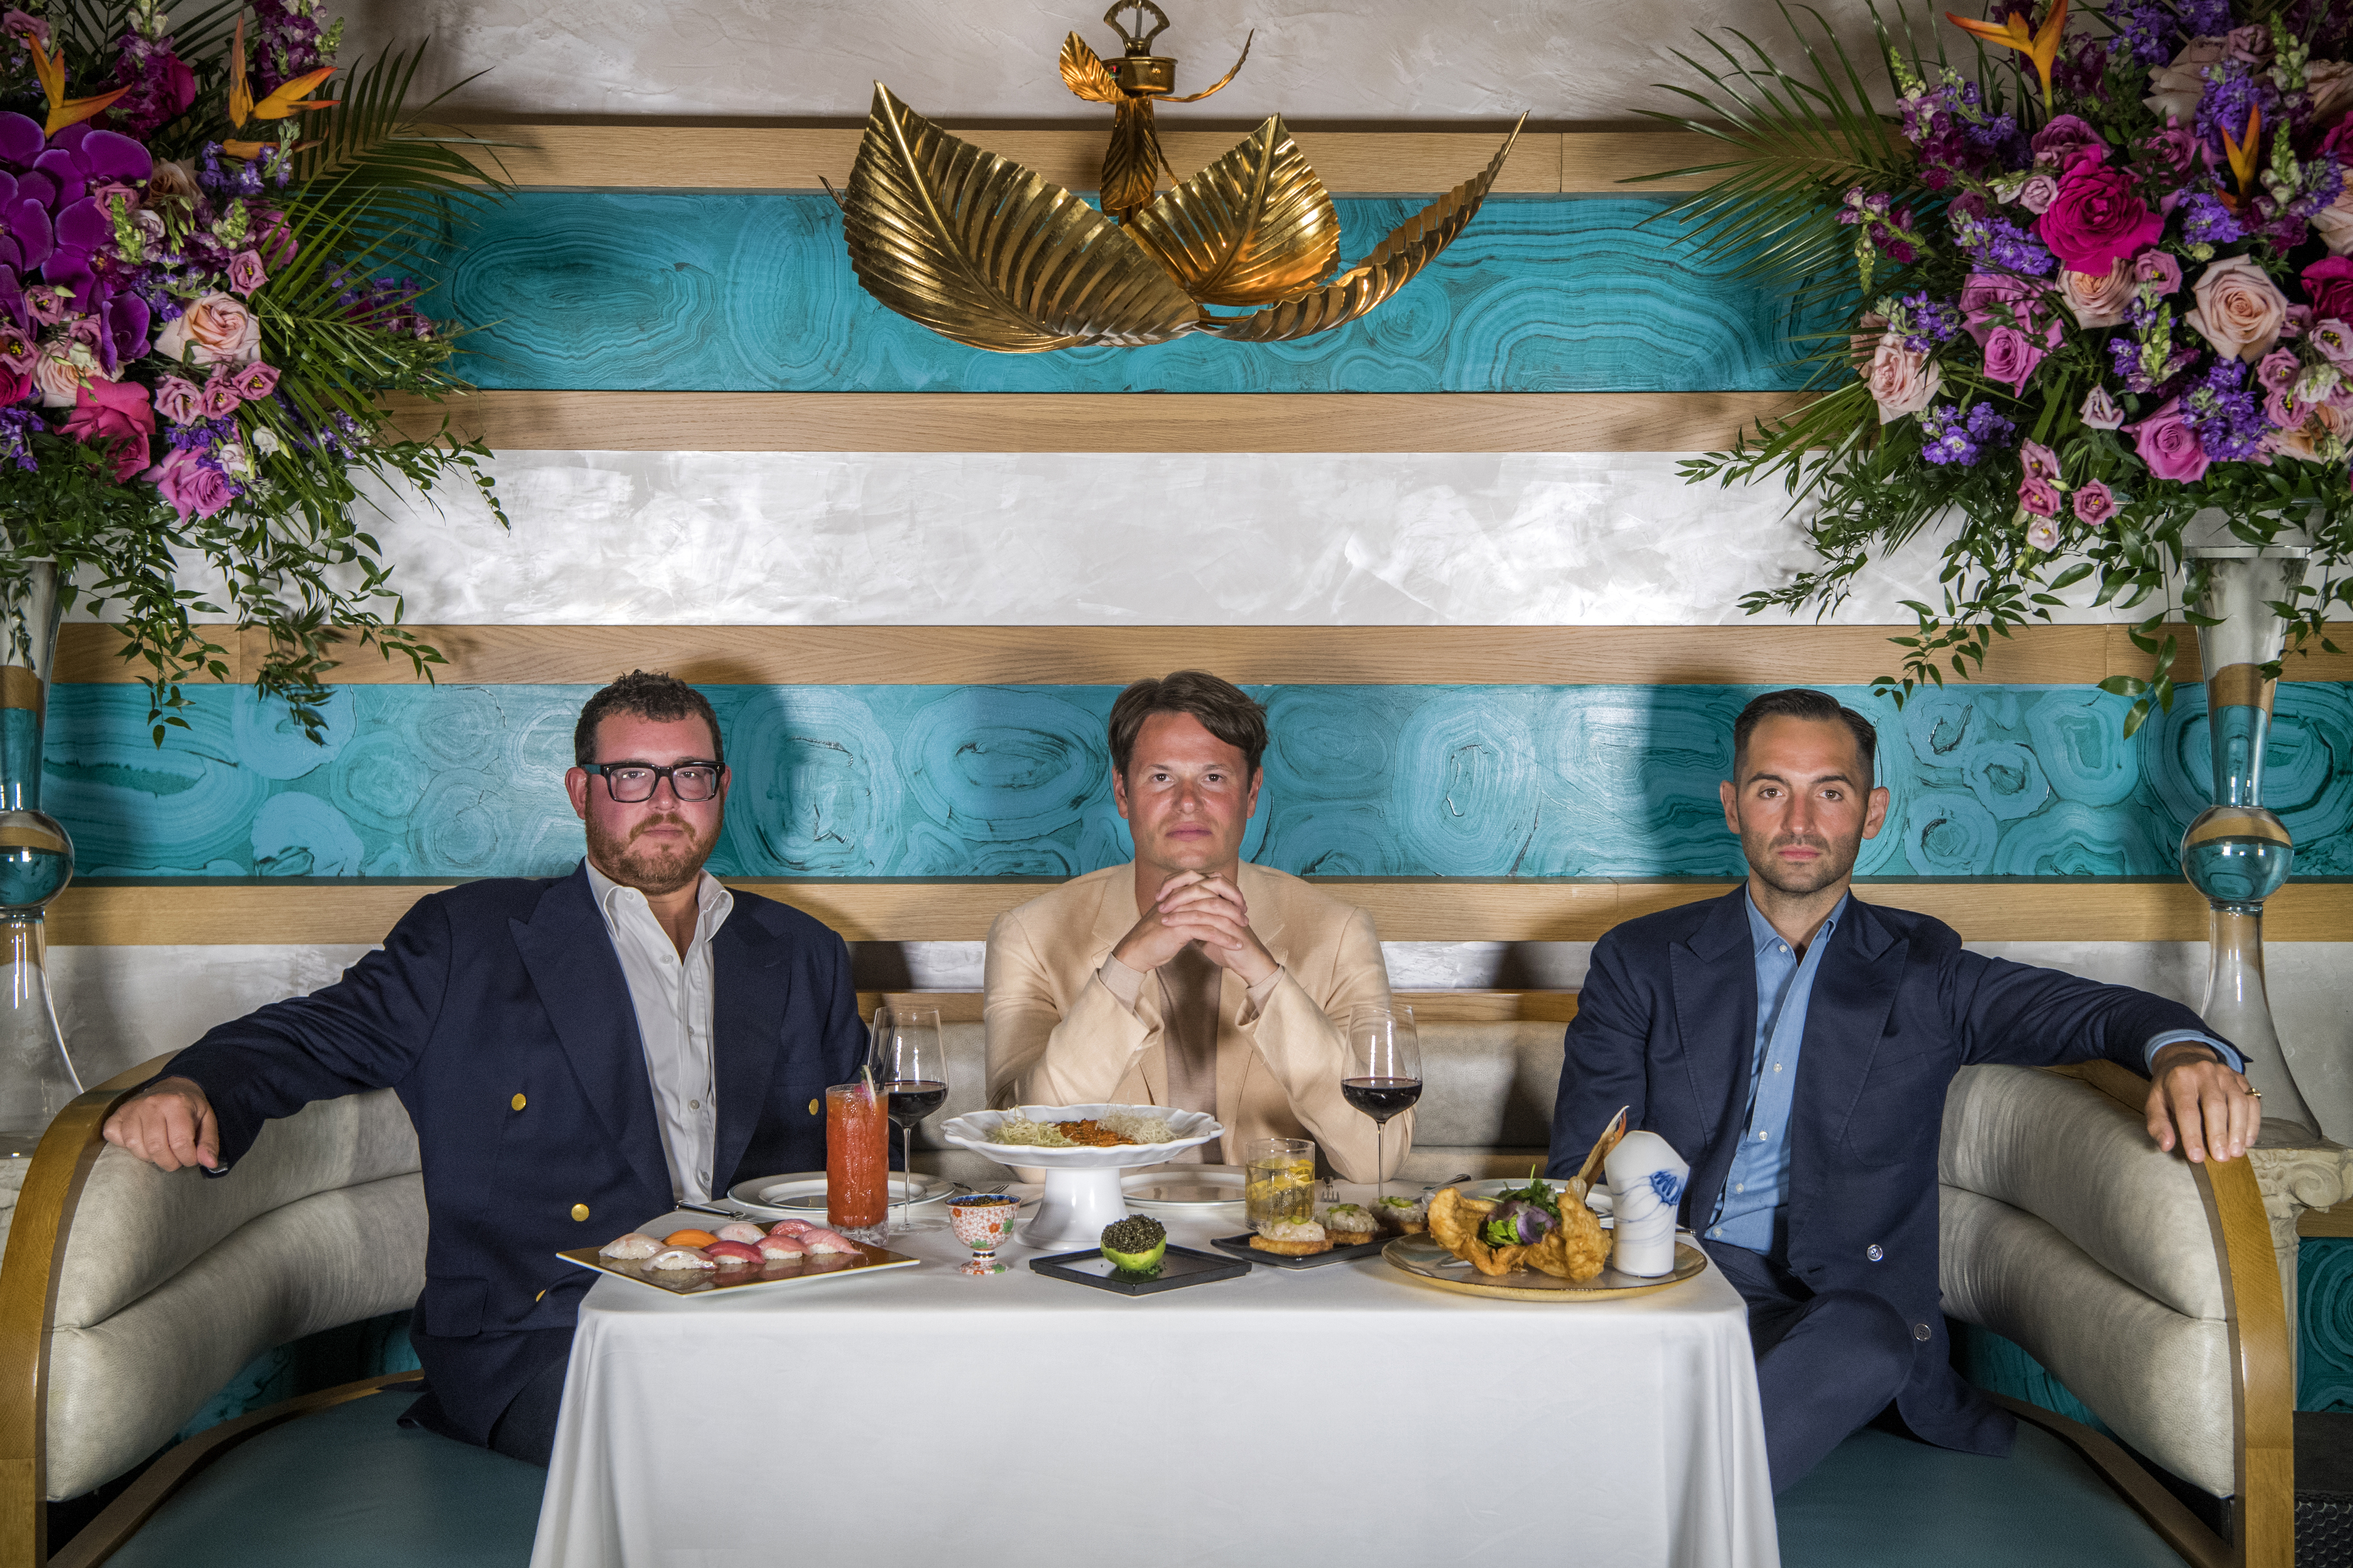 Three men with serious expressions sit at a restaurant booth behind a table laden with food. Above them is a chandelier in the shape of large gold leaves, and in either corner of the frame is a large bouquet of flowers